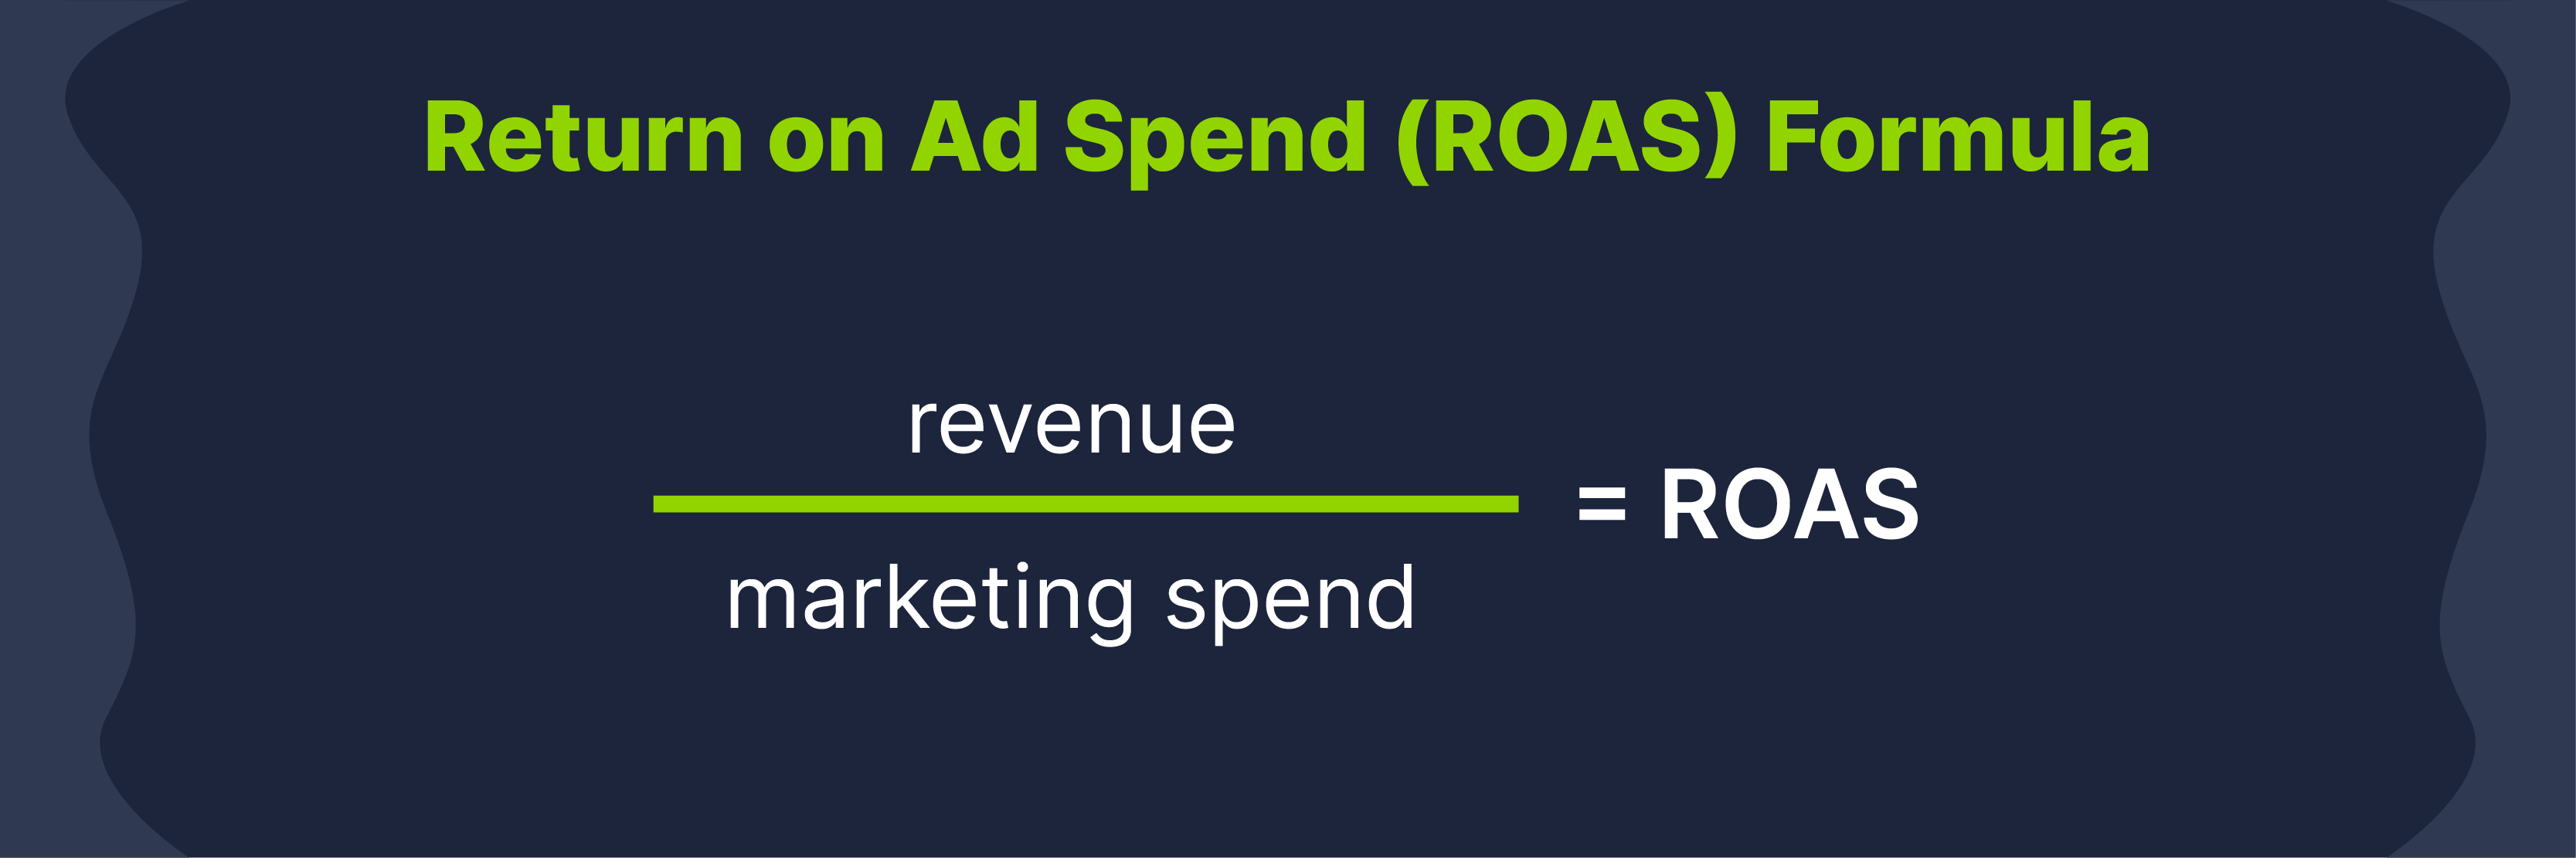 ROAS formula is revenue divided by marketing spend